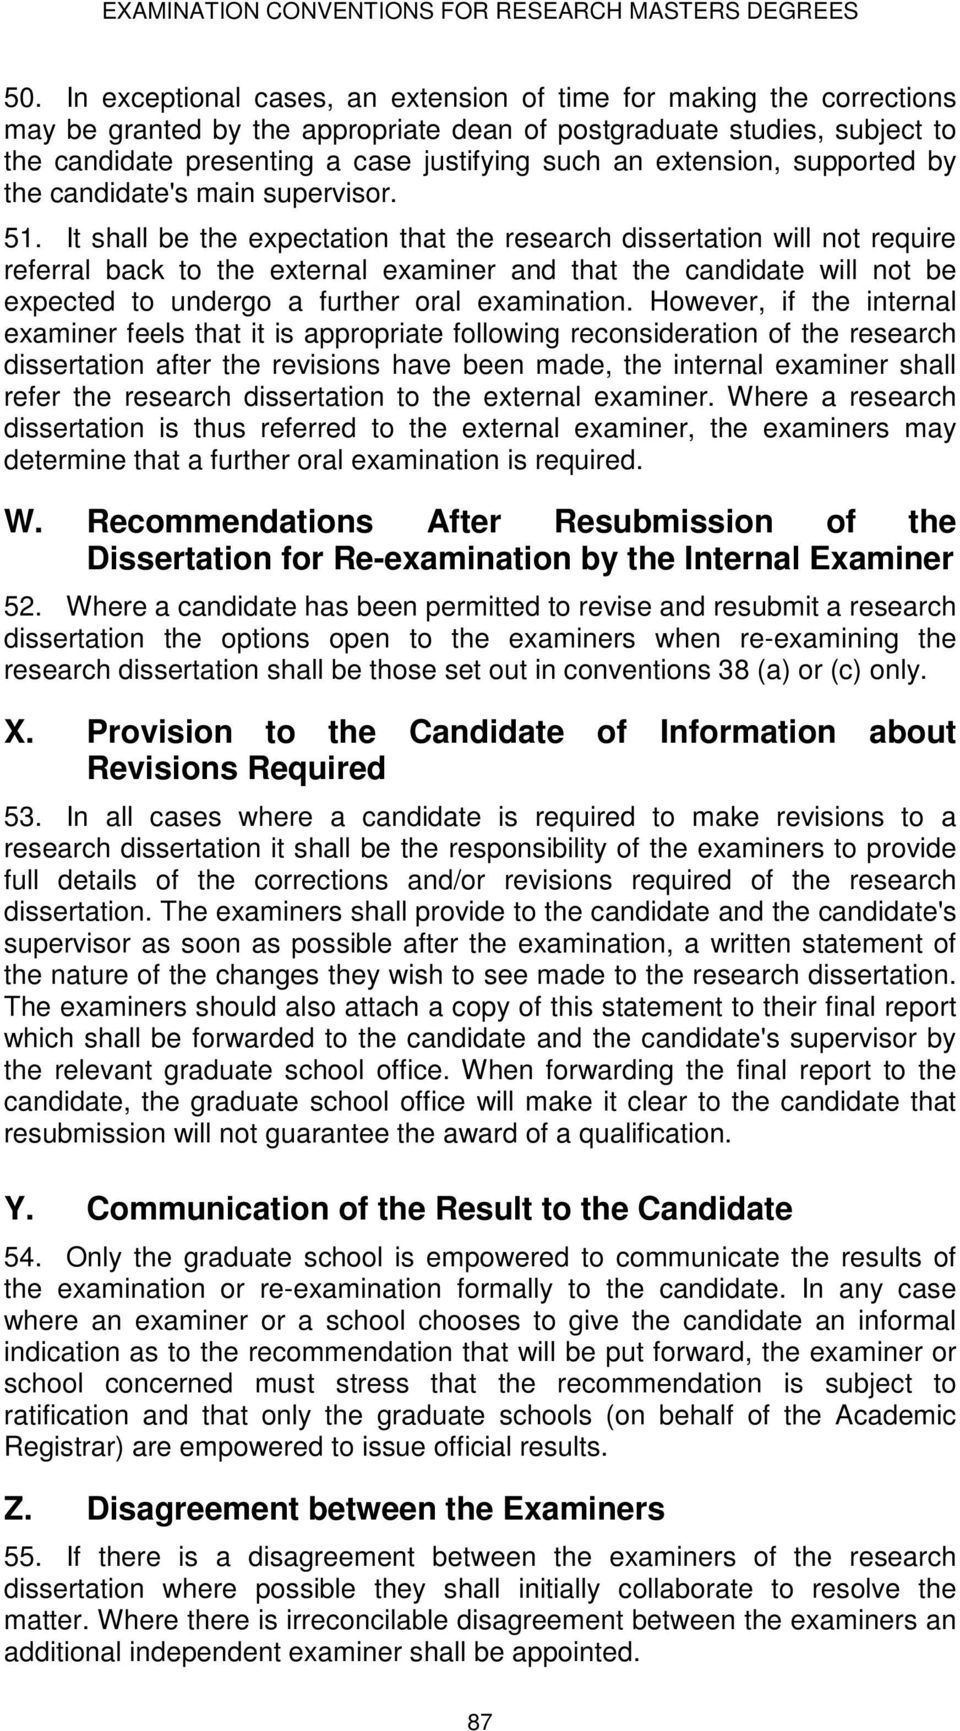 It shall be the expectation that the research dissertation will not require referral back to the external examiner and that the candidate will not be expected to undergo a further oral examination.